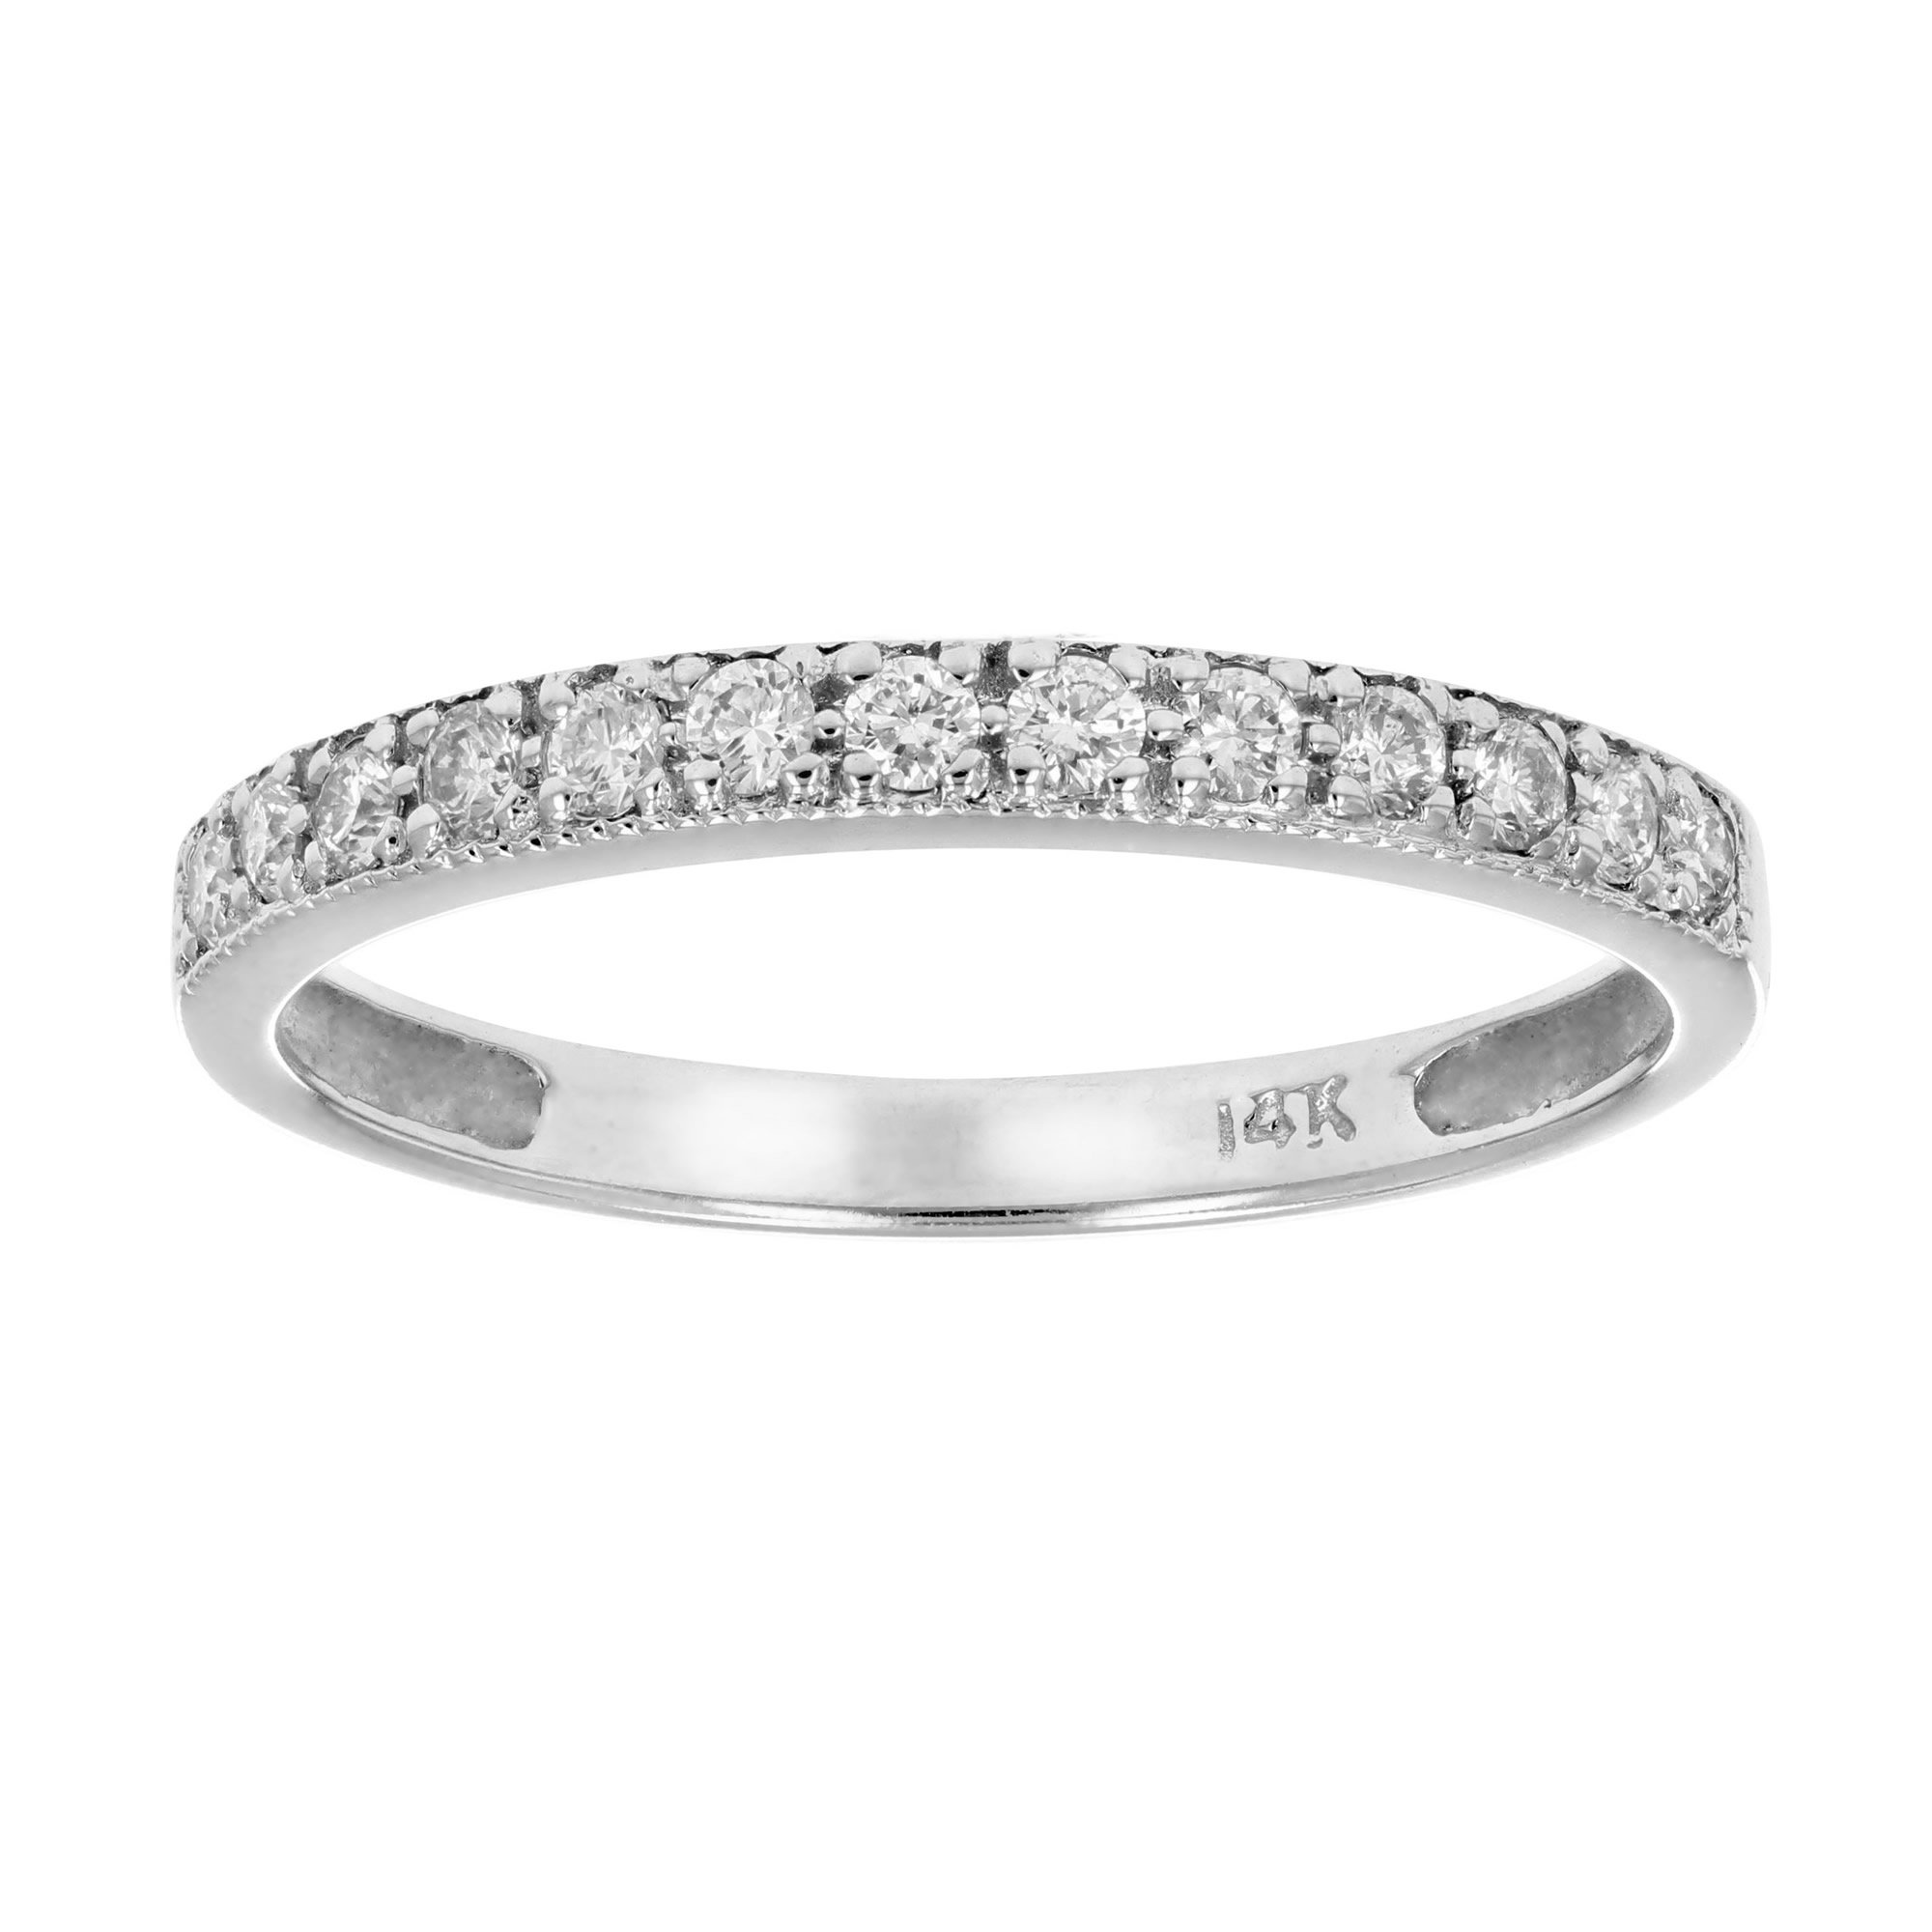 Vir Jewels Certified 1/4 cttw Milgrain Diamond Wedding Band 14K White Gold Size 7